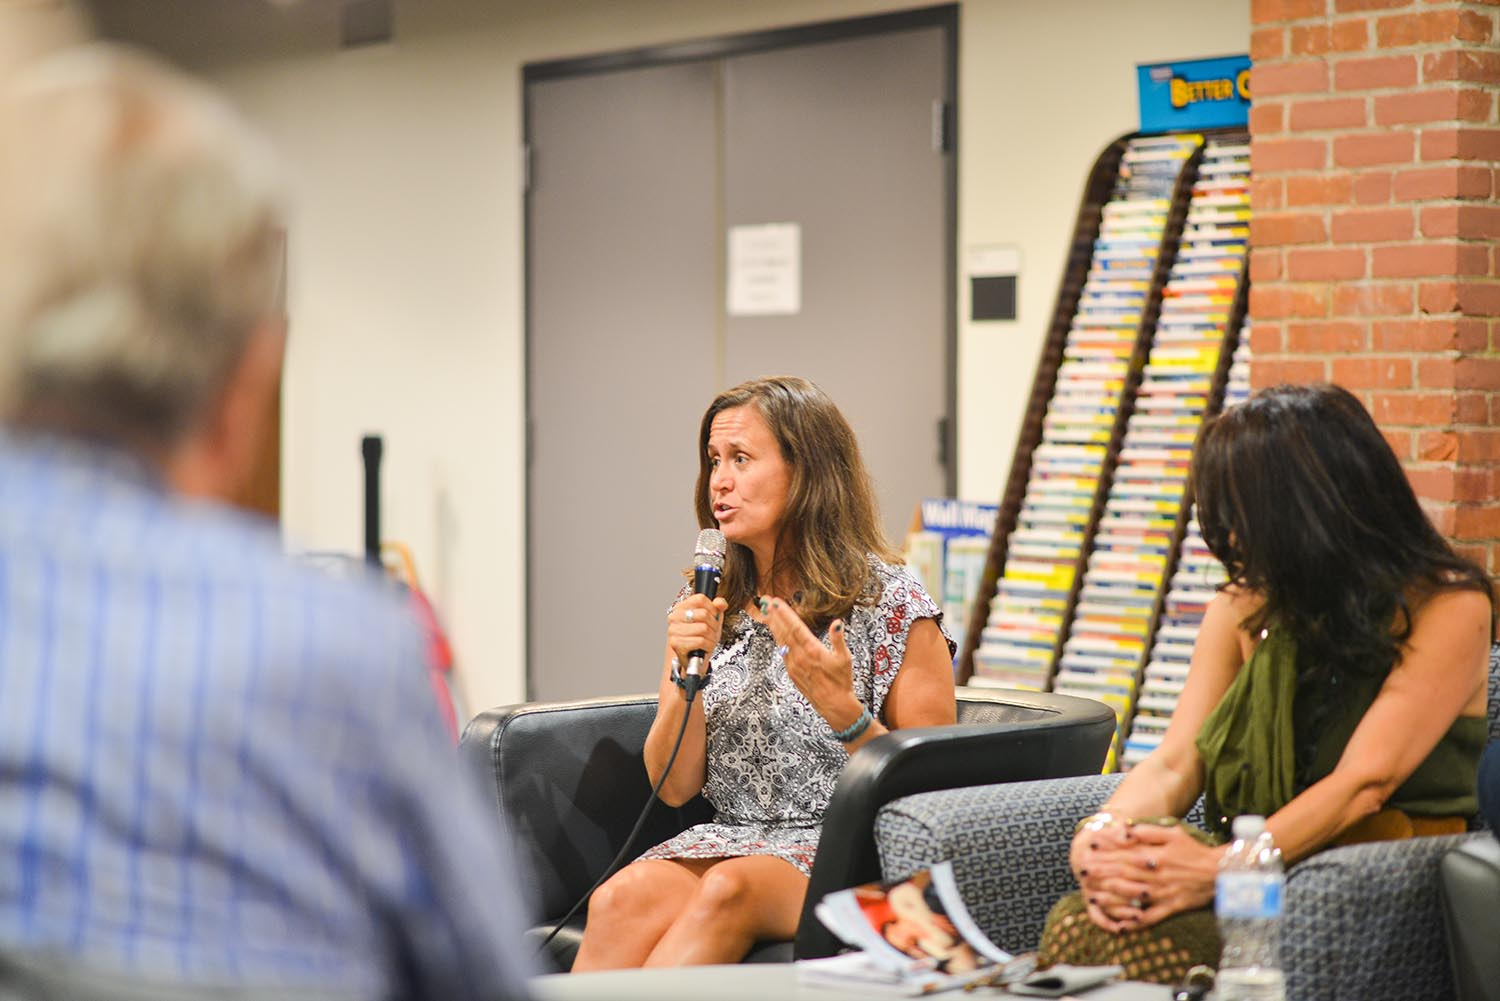 On. Sept. 16, University Chaplain Tracy Mehr-Muska spoke about her new book, Weathering the Storm, during a Local Author Program on Mind, Body, Spirit at the Wesleyan RJ Julia Bookstore.